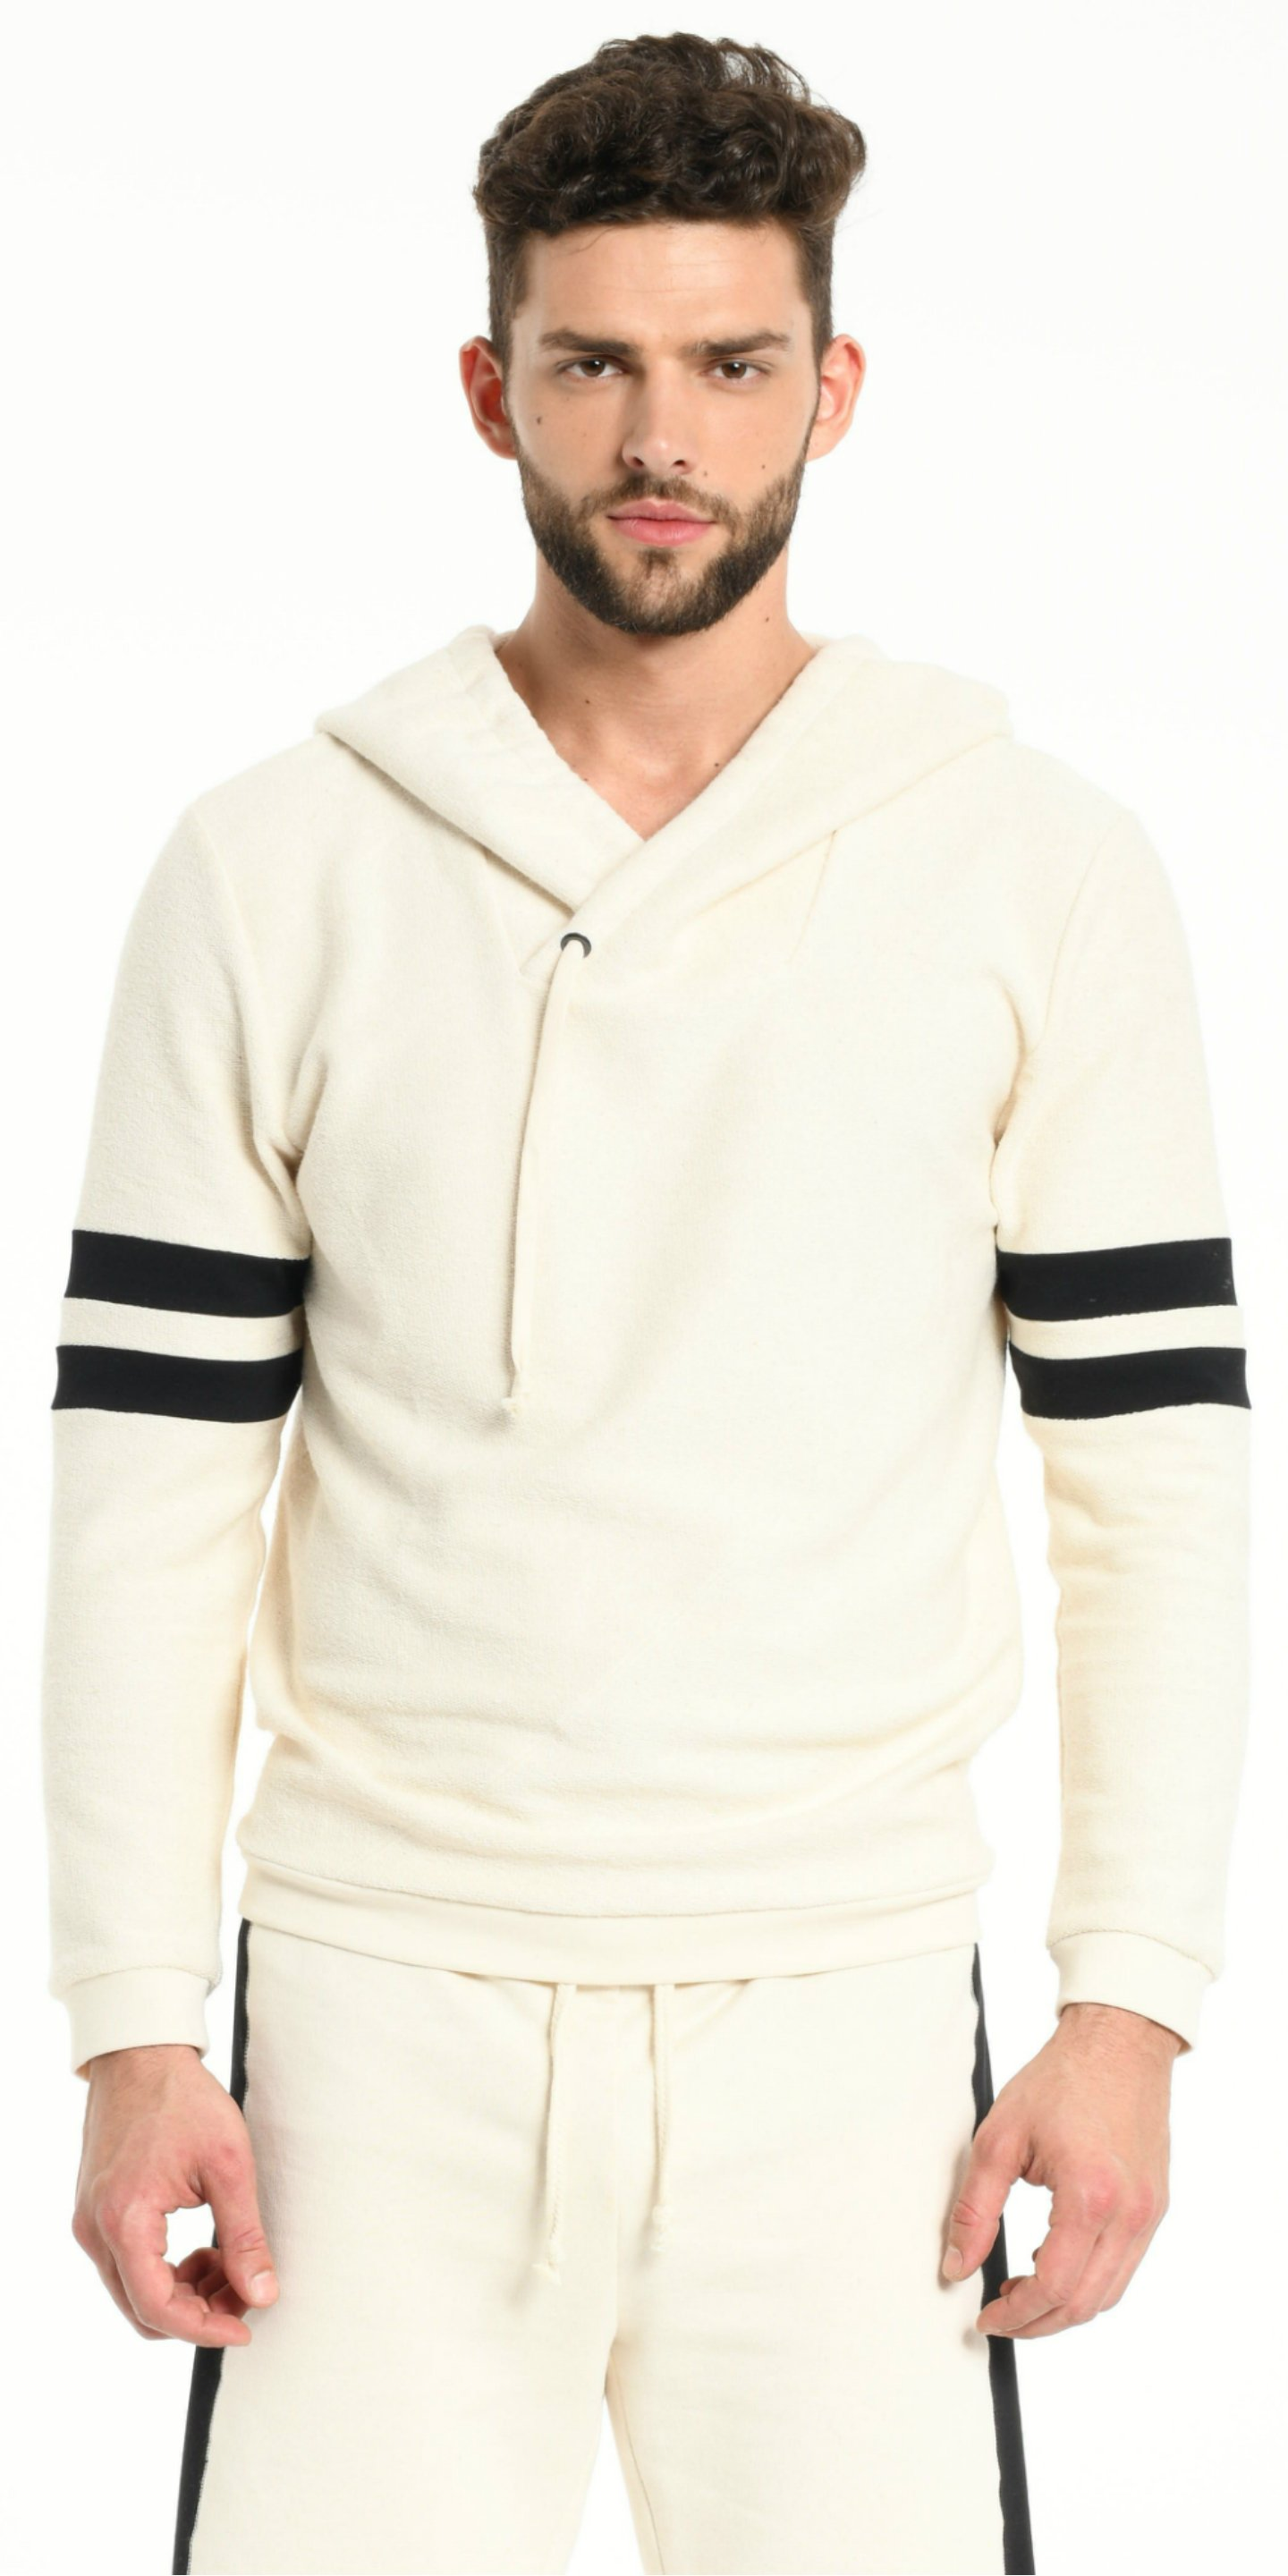 HOODIE OFF WHITE WITH BLACK STRIPS from BEARD & FRINGE